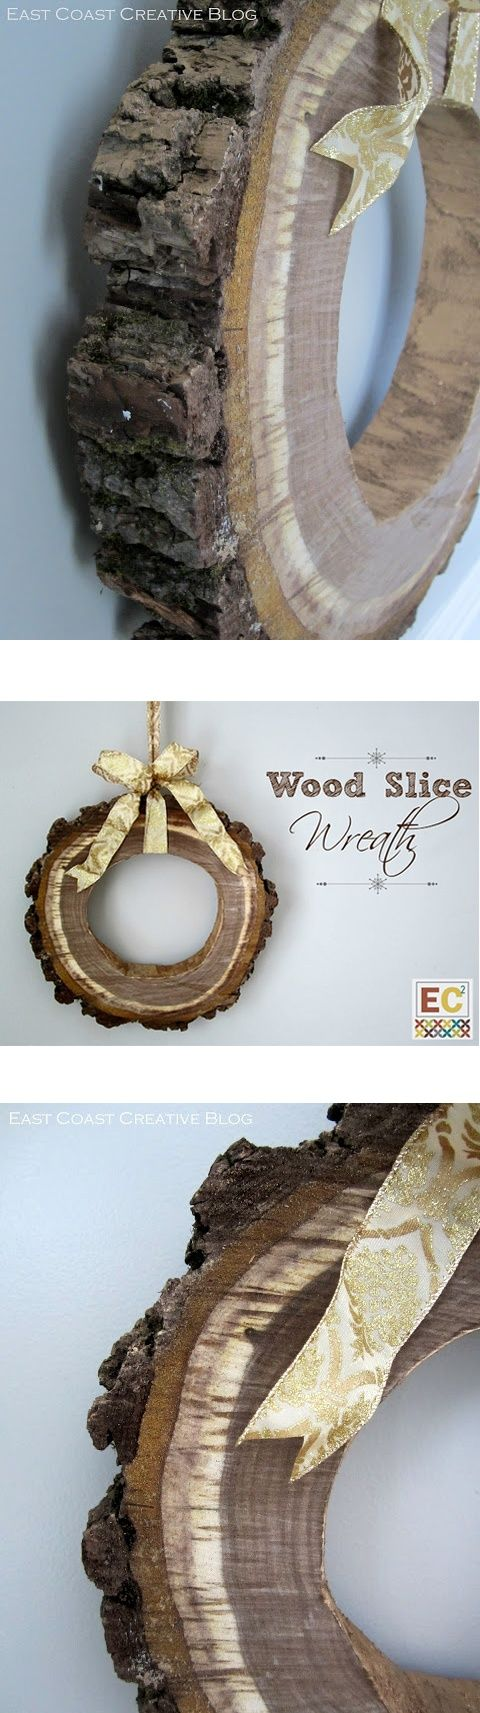 DIY Christmas Wreath from Wood - Popular DIY & Crafts Pins on Pinterest